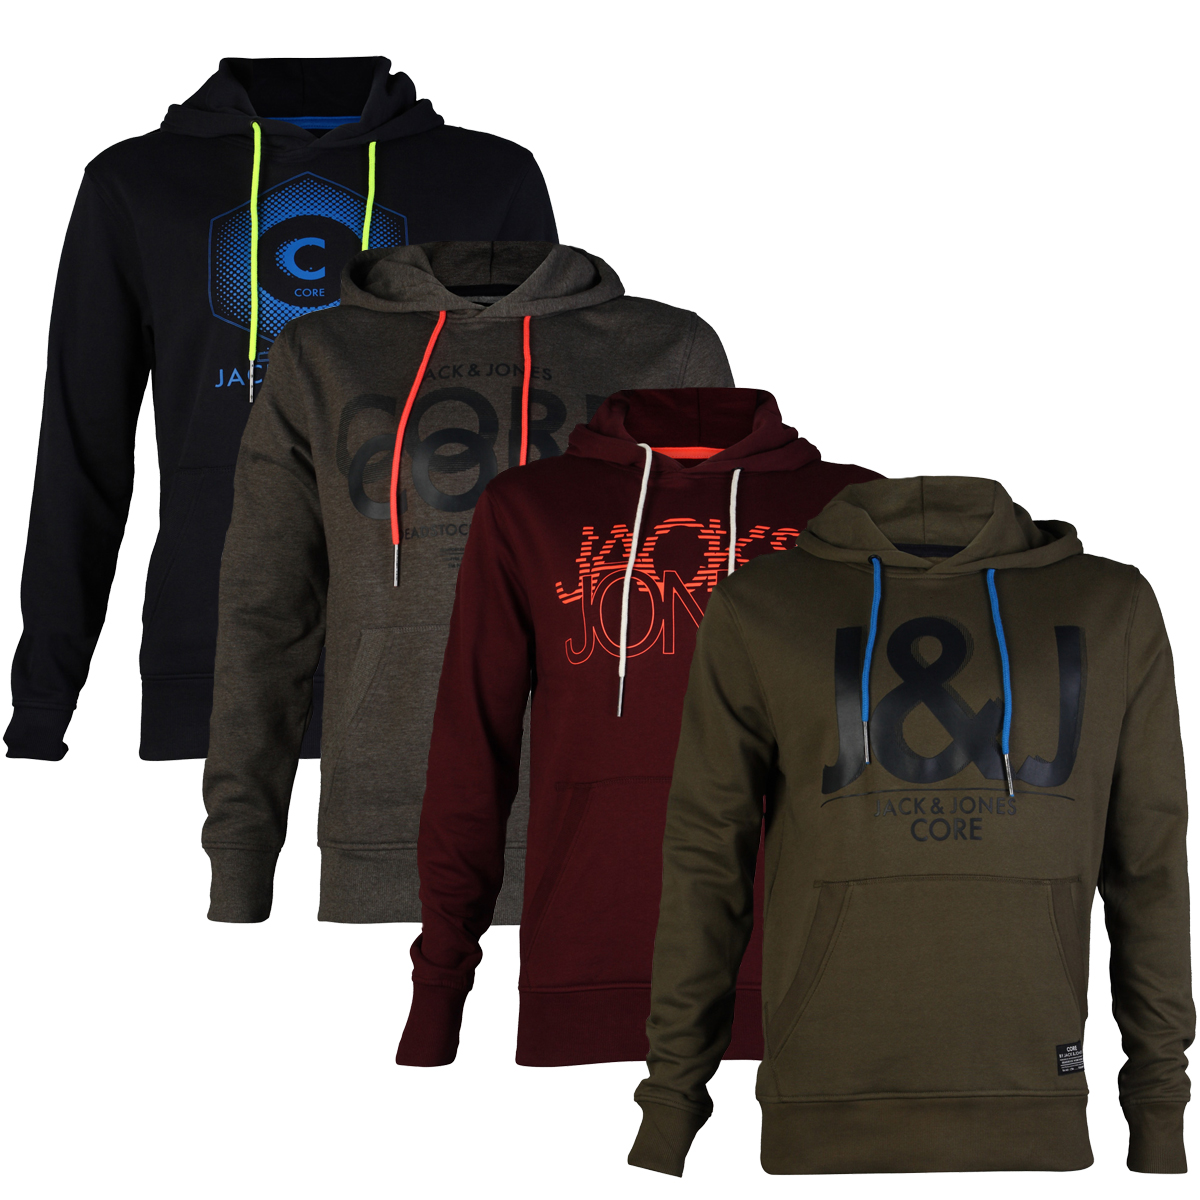 new mens jack jones elijah designer hooded sweatshirt. Black Bedroom Furniture Sets. Home Design Ideas